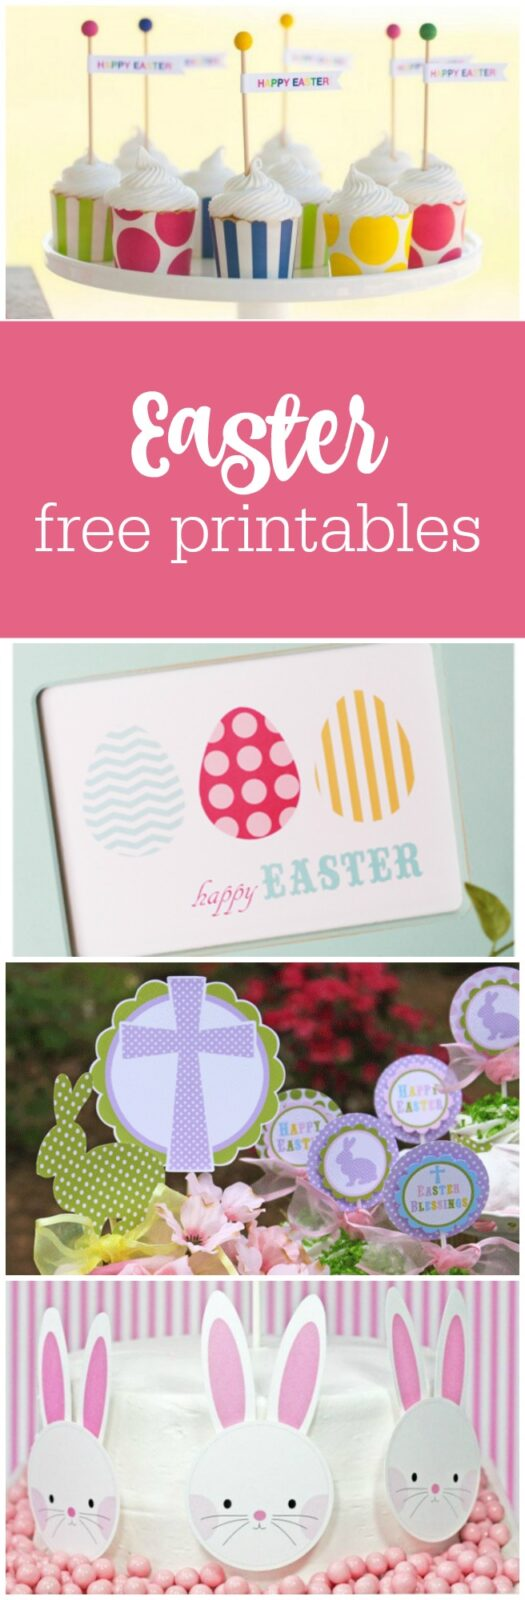 Free Easter printables curated by The Party Teacher